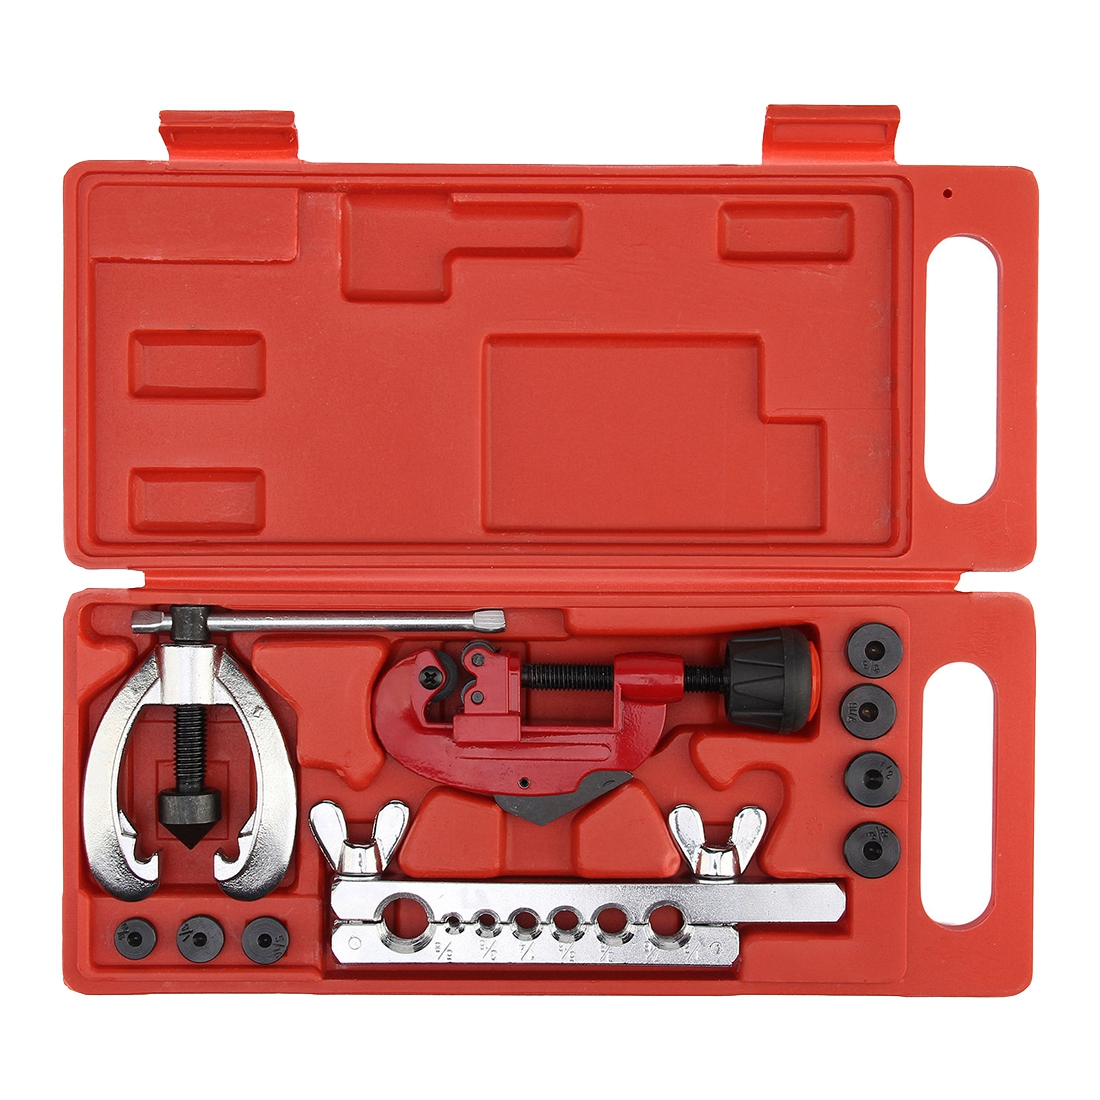 Heat Treated Steel Tube Cutter Copper Brake Fuel Pipe Repair Double Flaring Die Tool Set Clamp KitFor Cutting And Flaring Copper